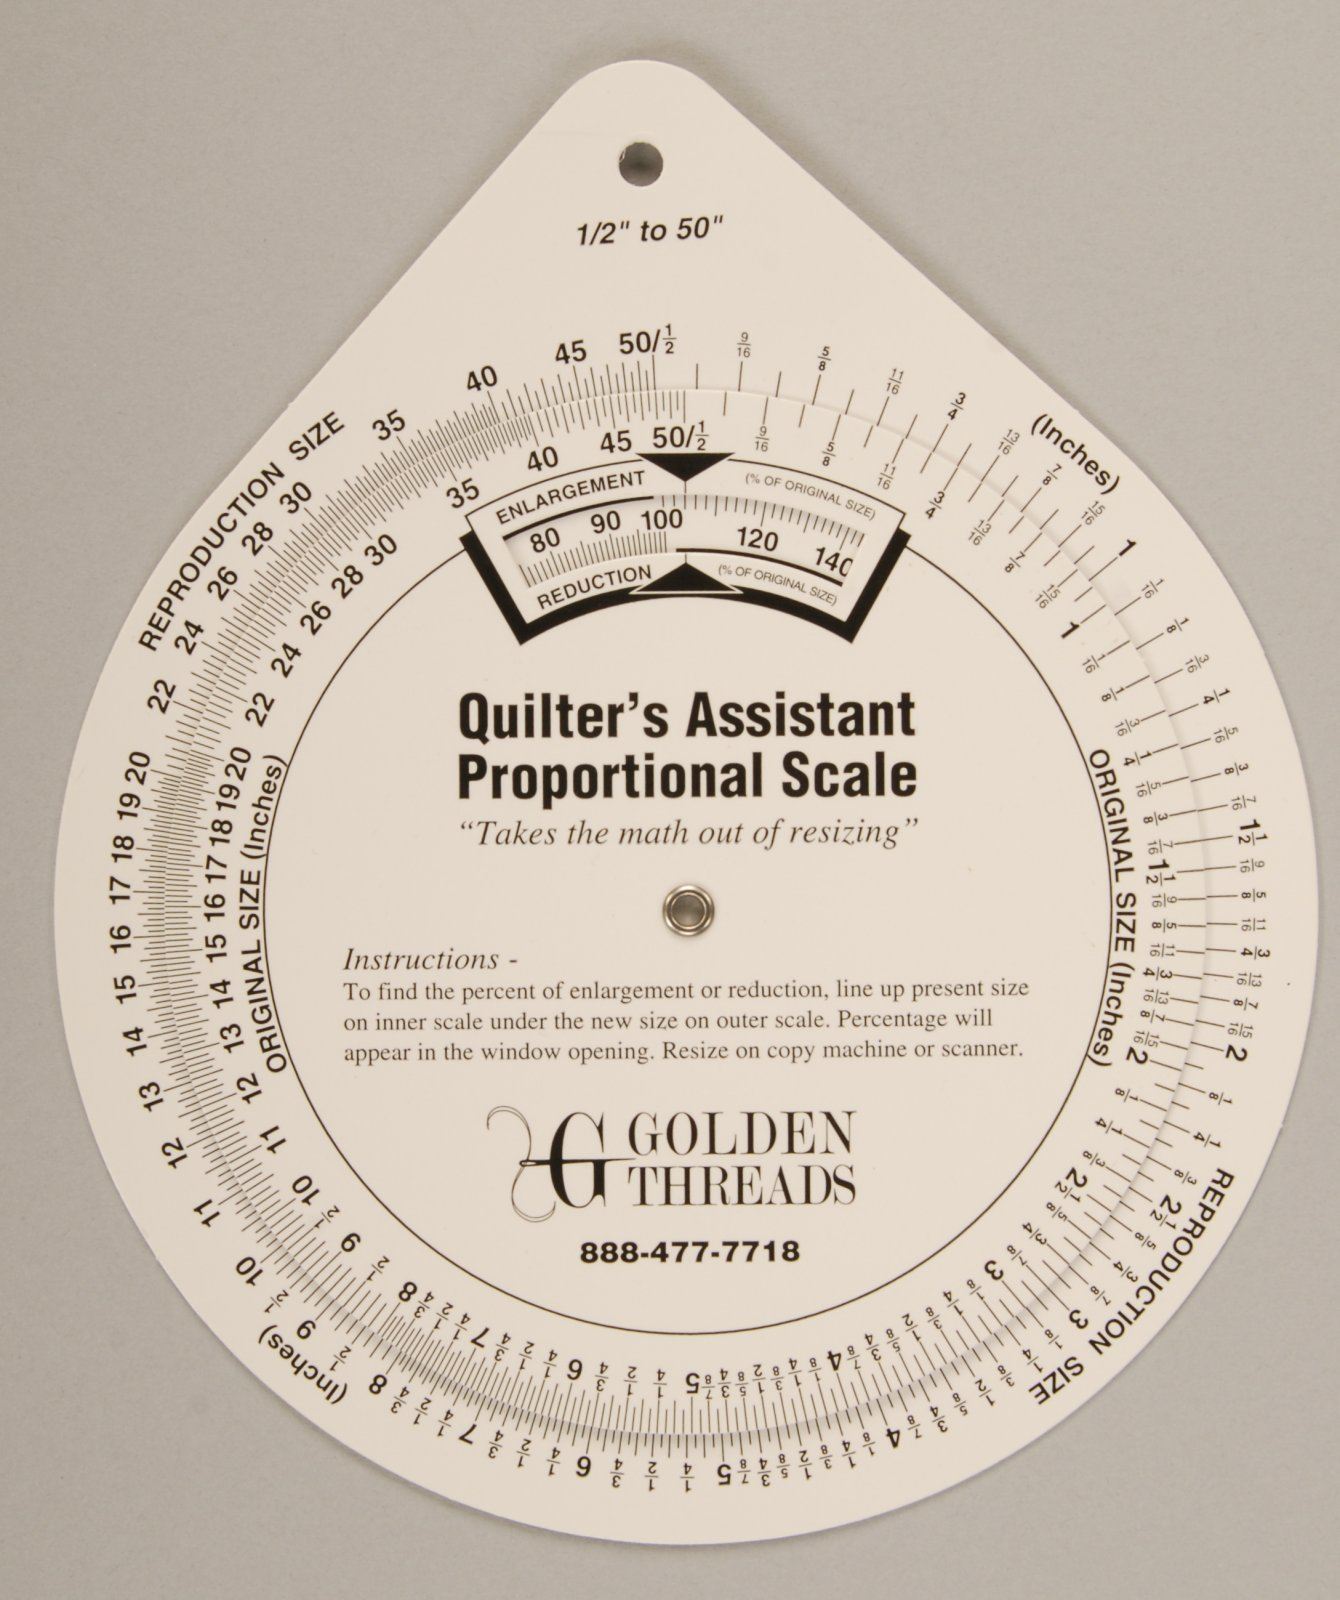 Artists Proportional Scale